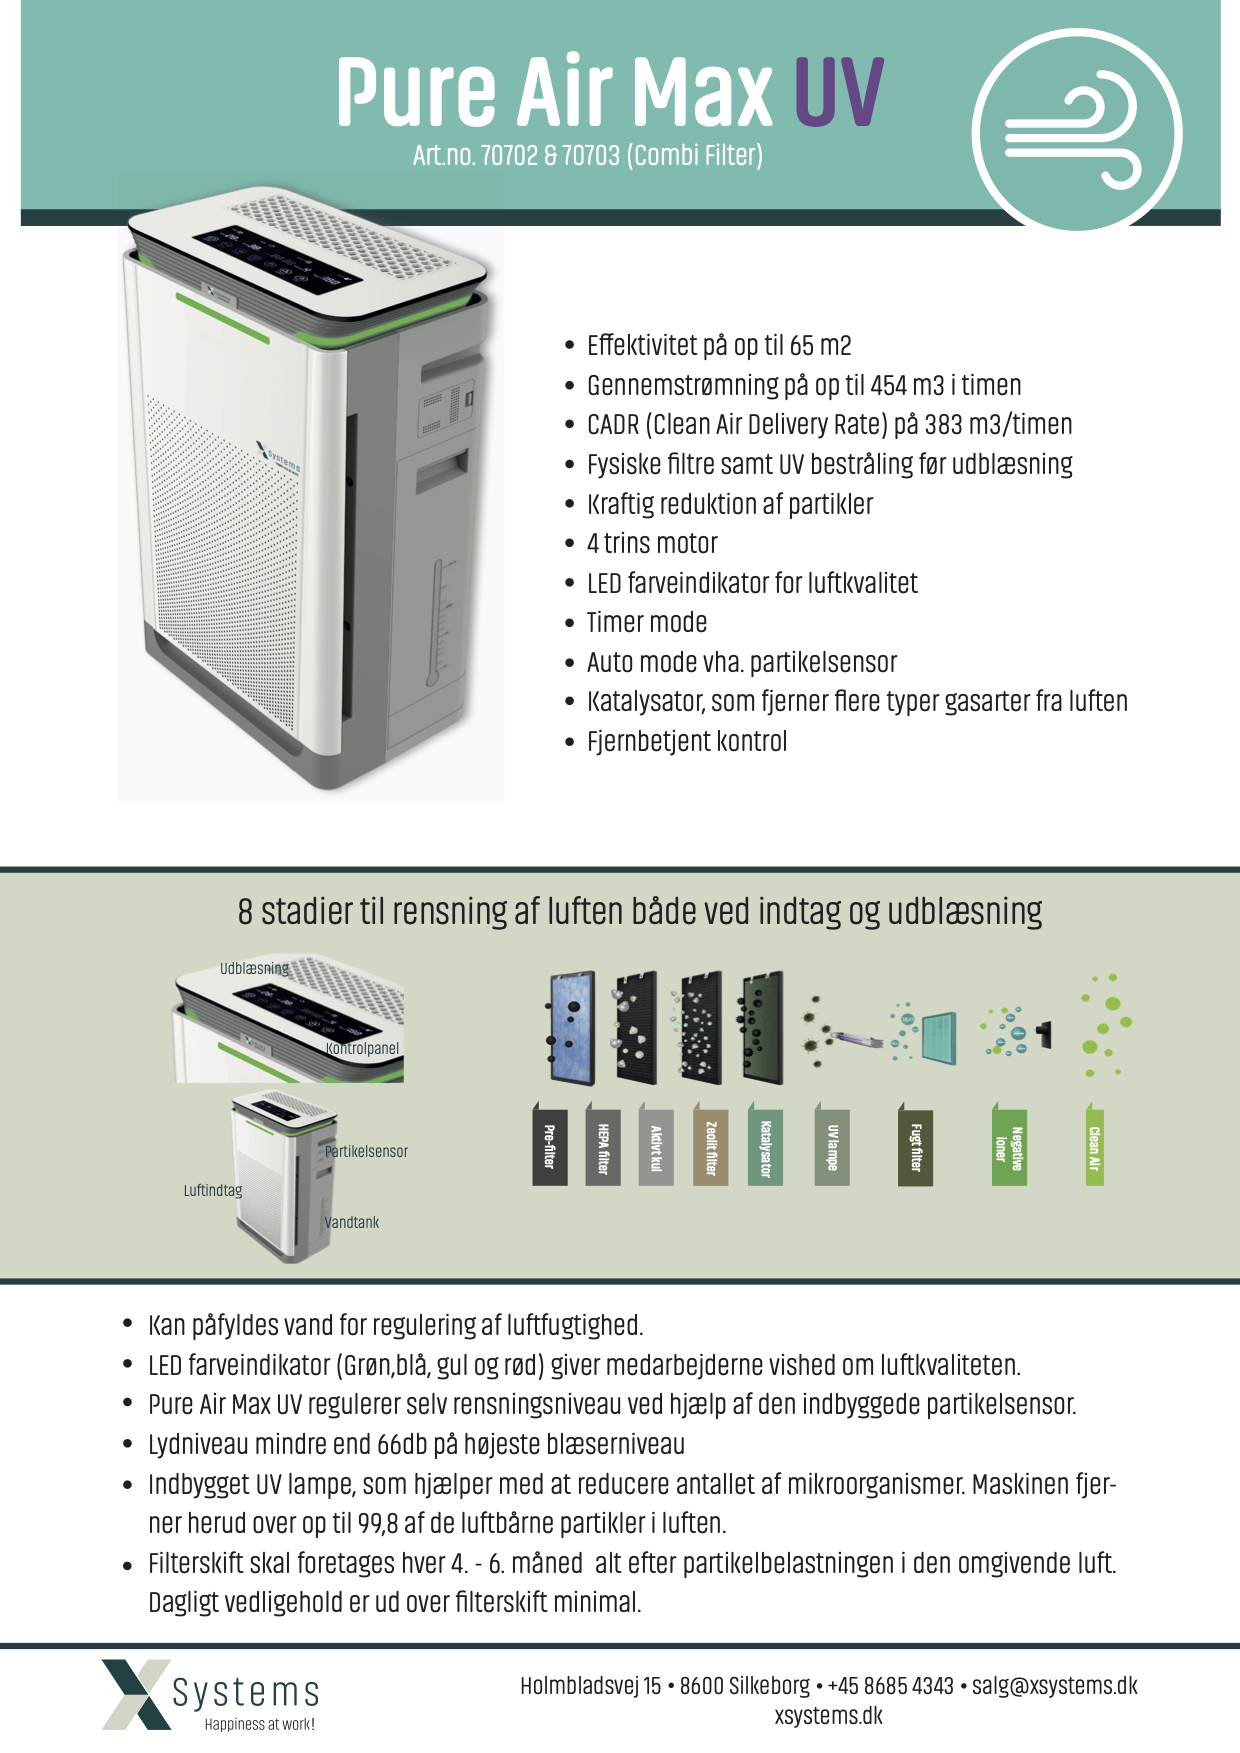 AssistData - Pure Air Max UV from Xsystems